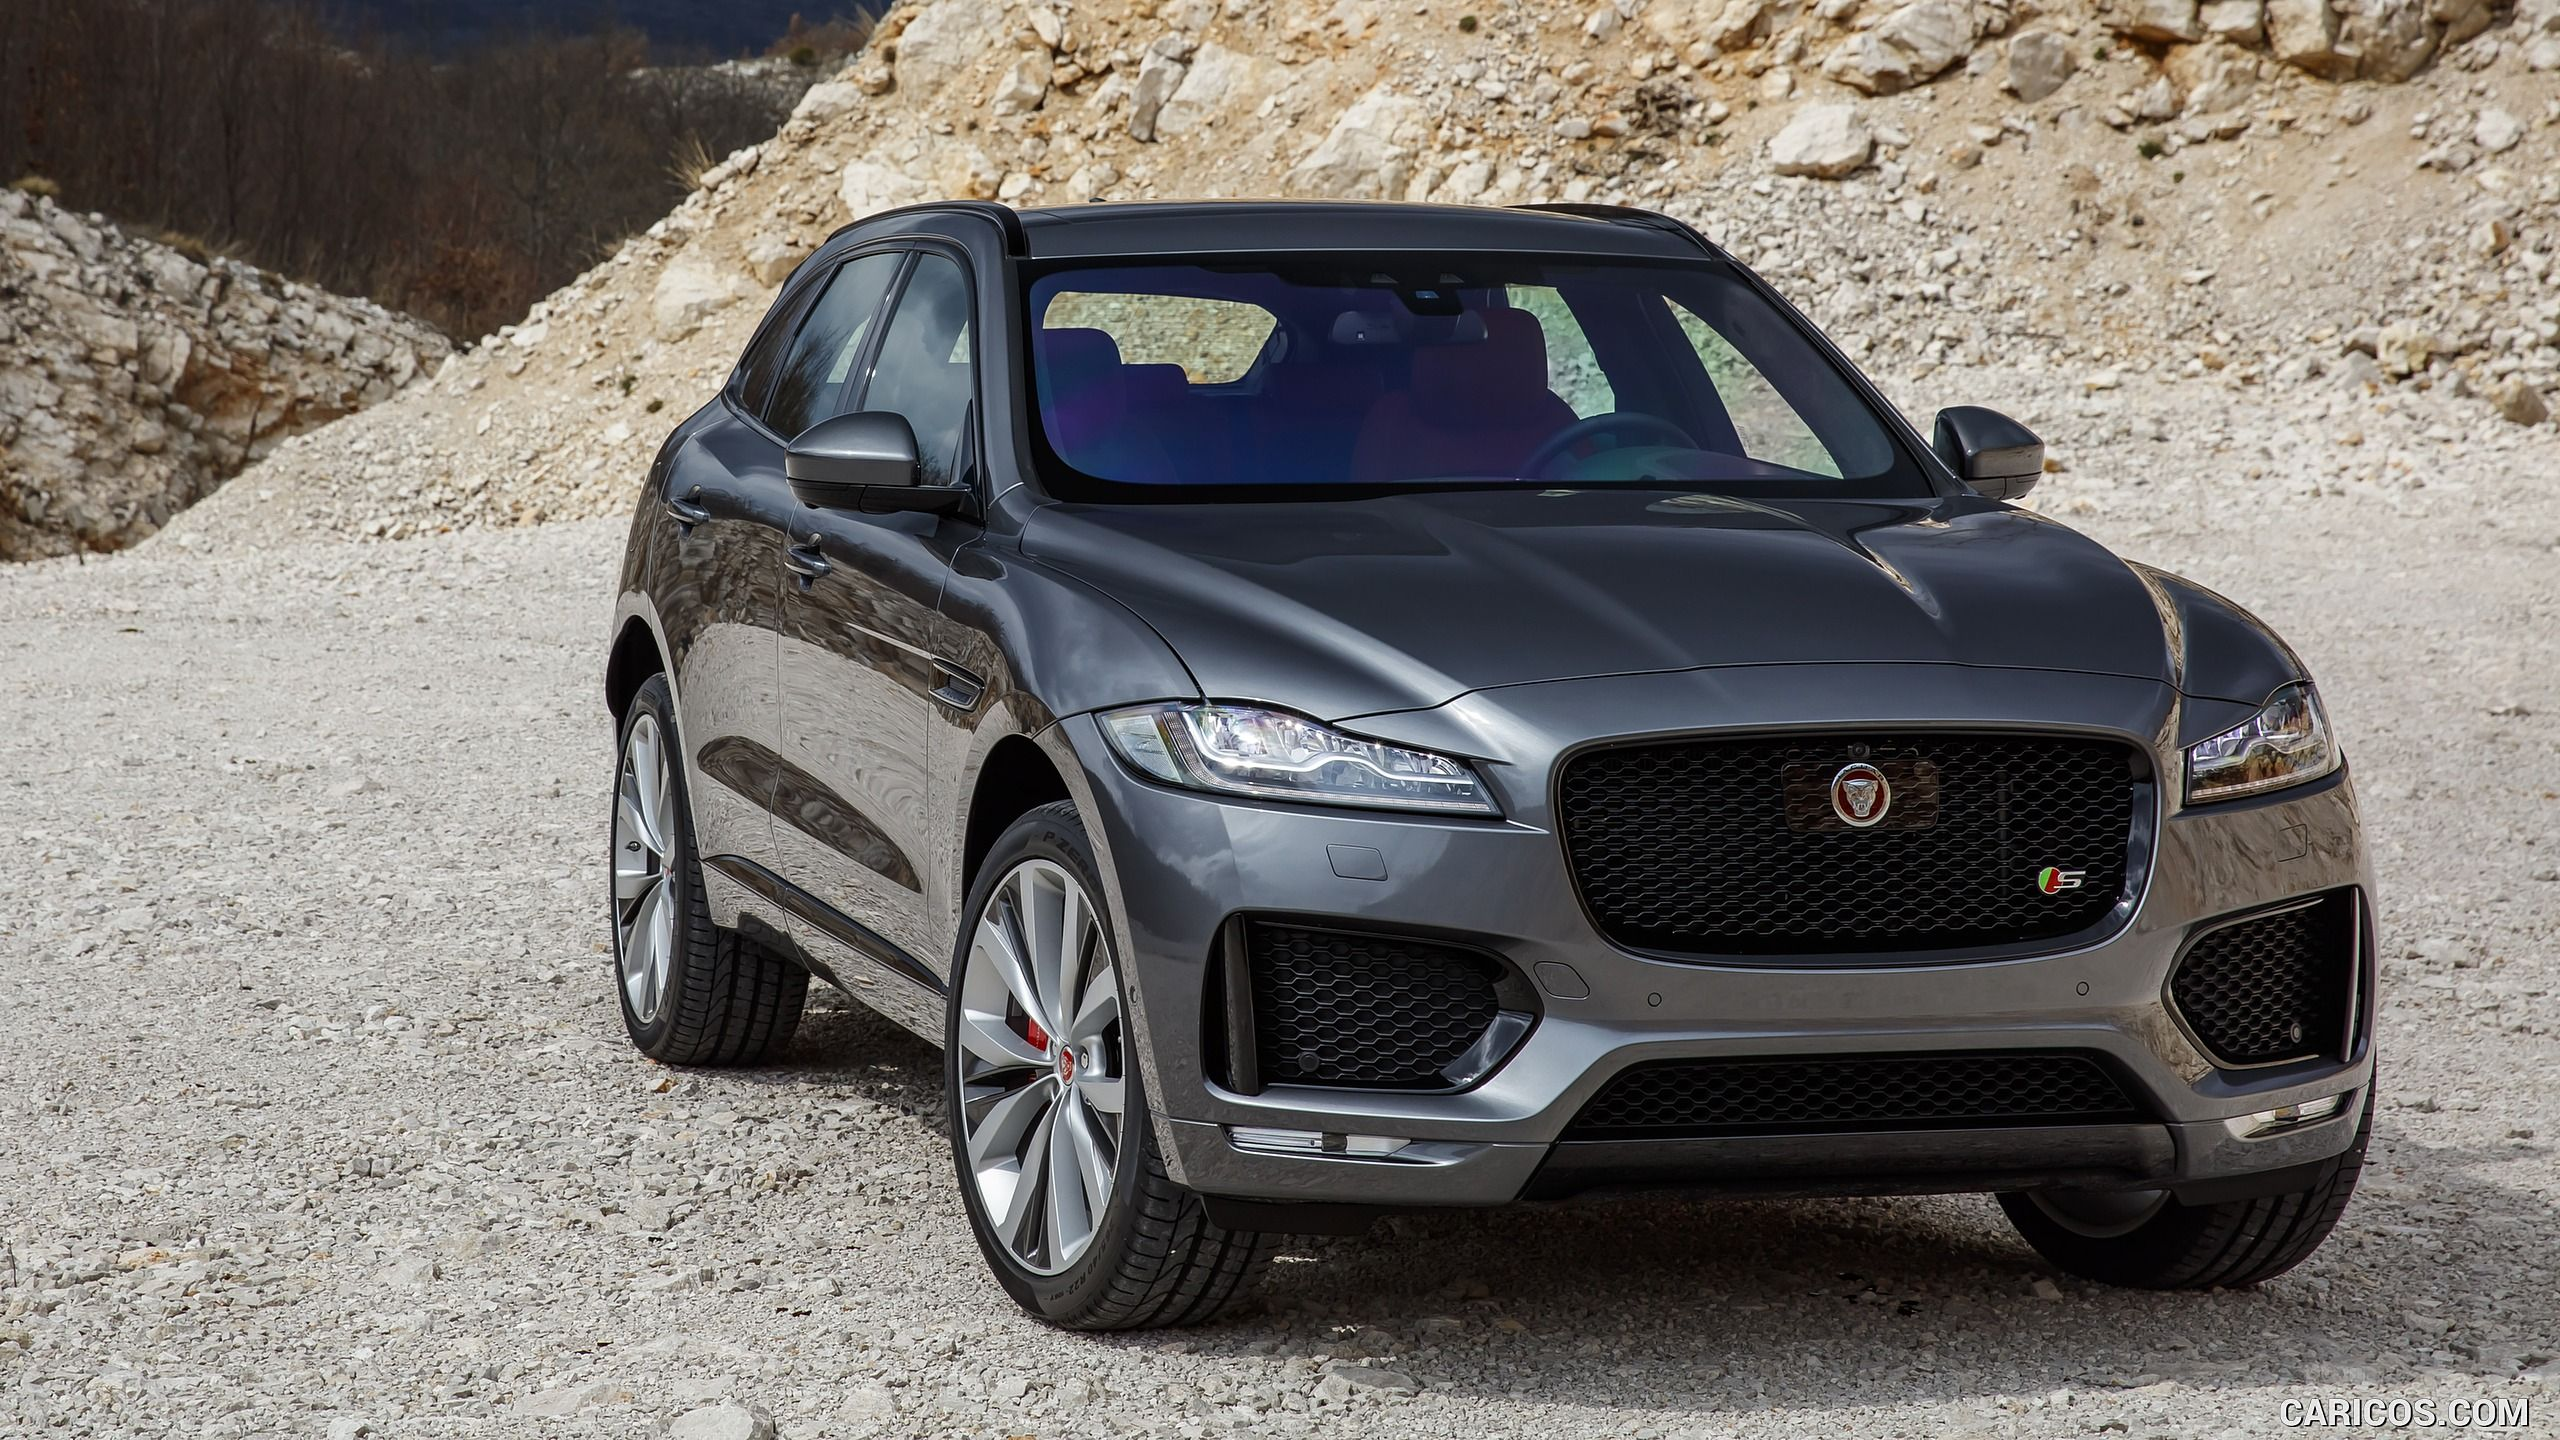 2017 Jaguar F Pace S Wallpaper Jaguar Fpace Jaguar Jaguar Car